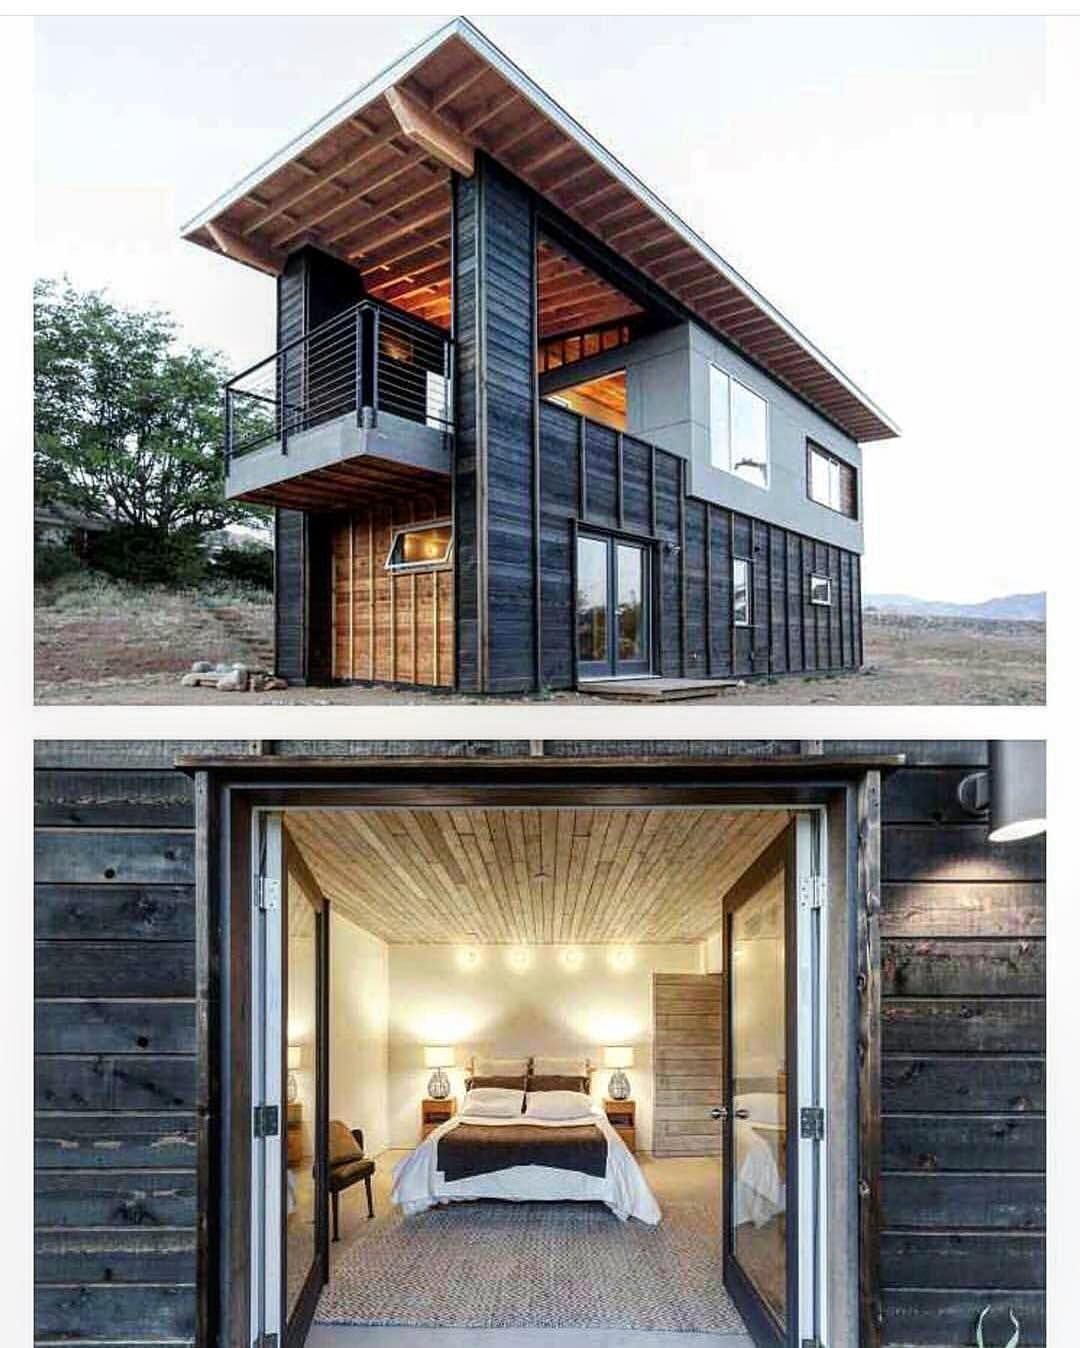 Shipping Container Homes 6 Decoratoo Container House Design Shipping Container Home Designs Building A Container Home